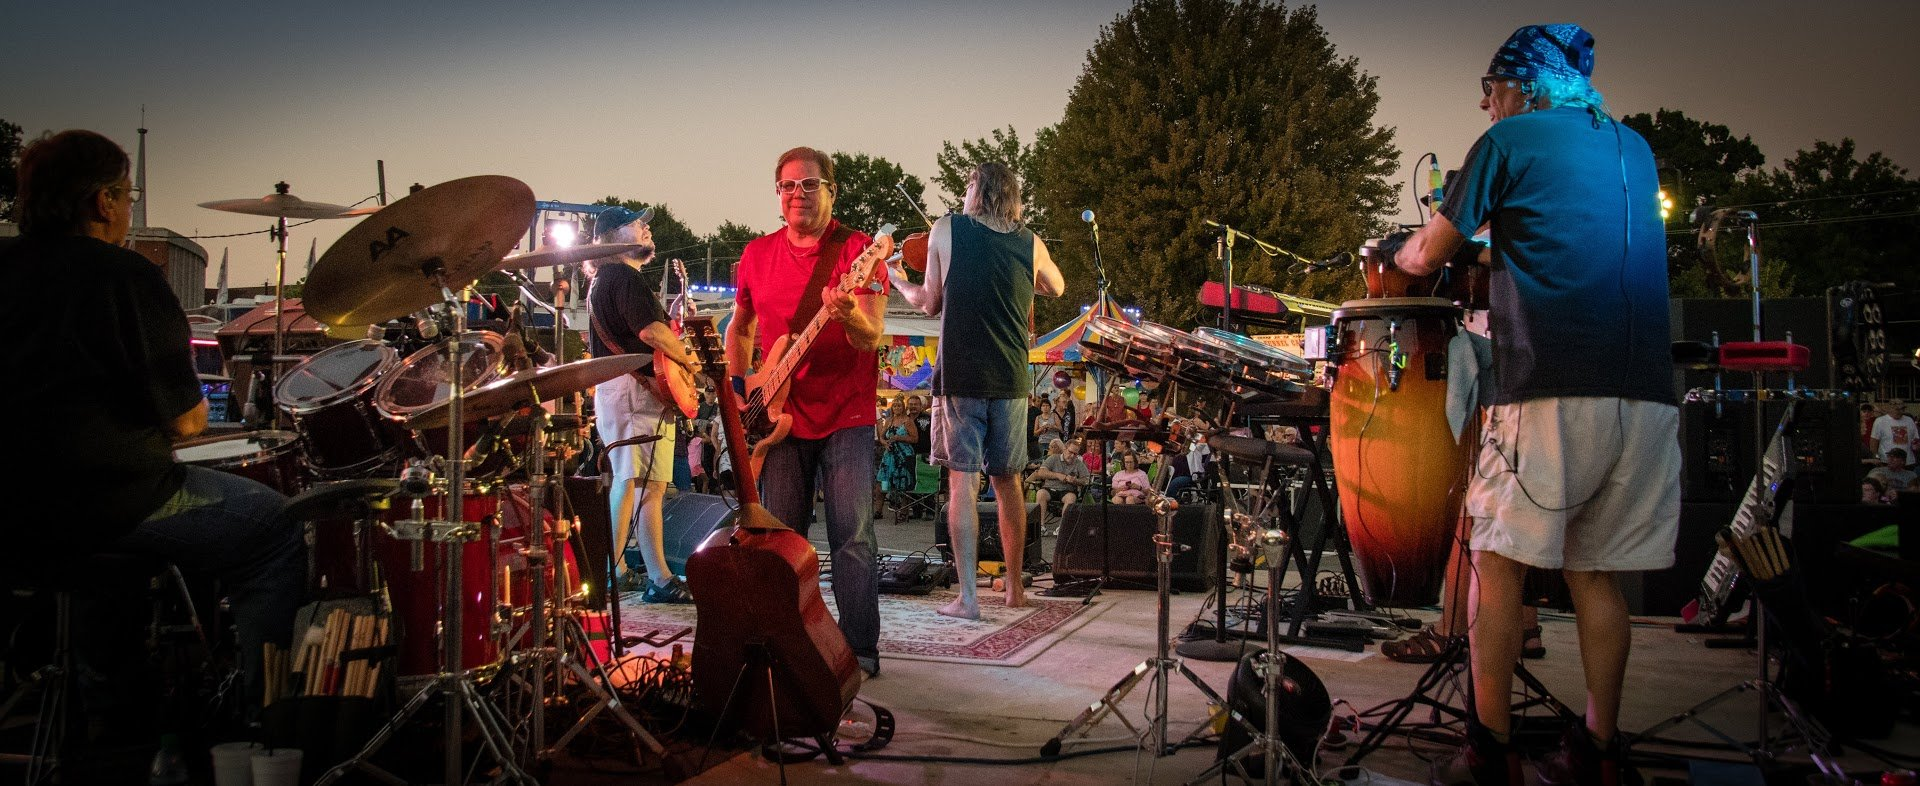 Best time to see Beaverdale Fall Festival 2020